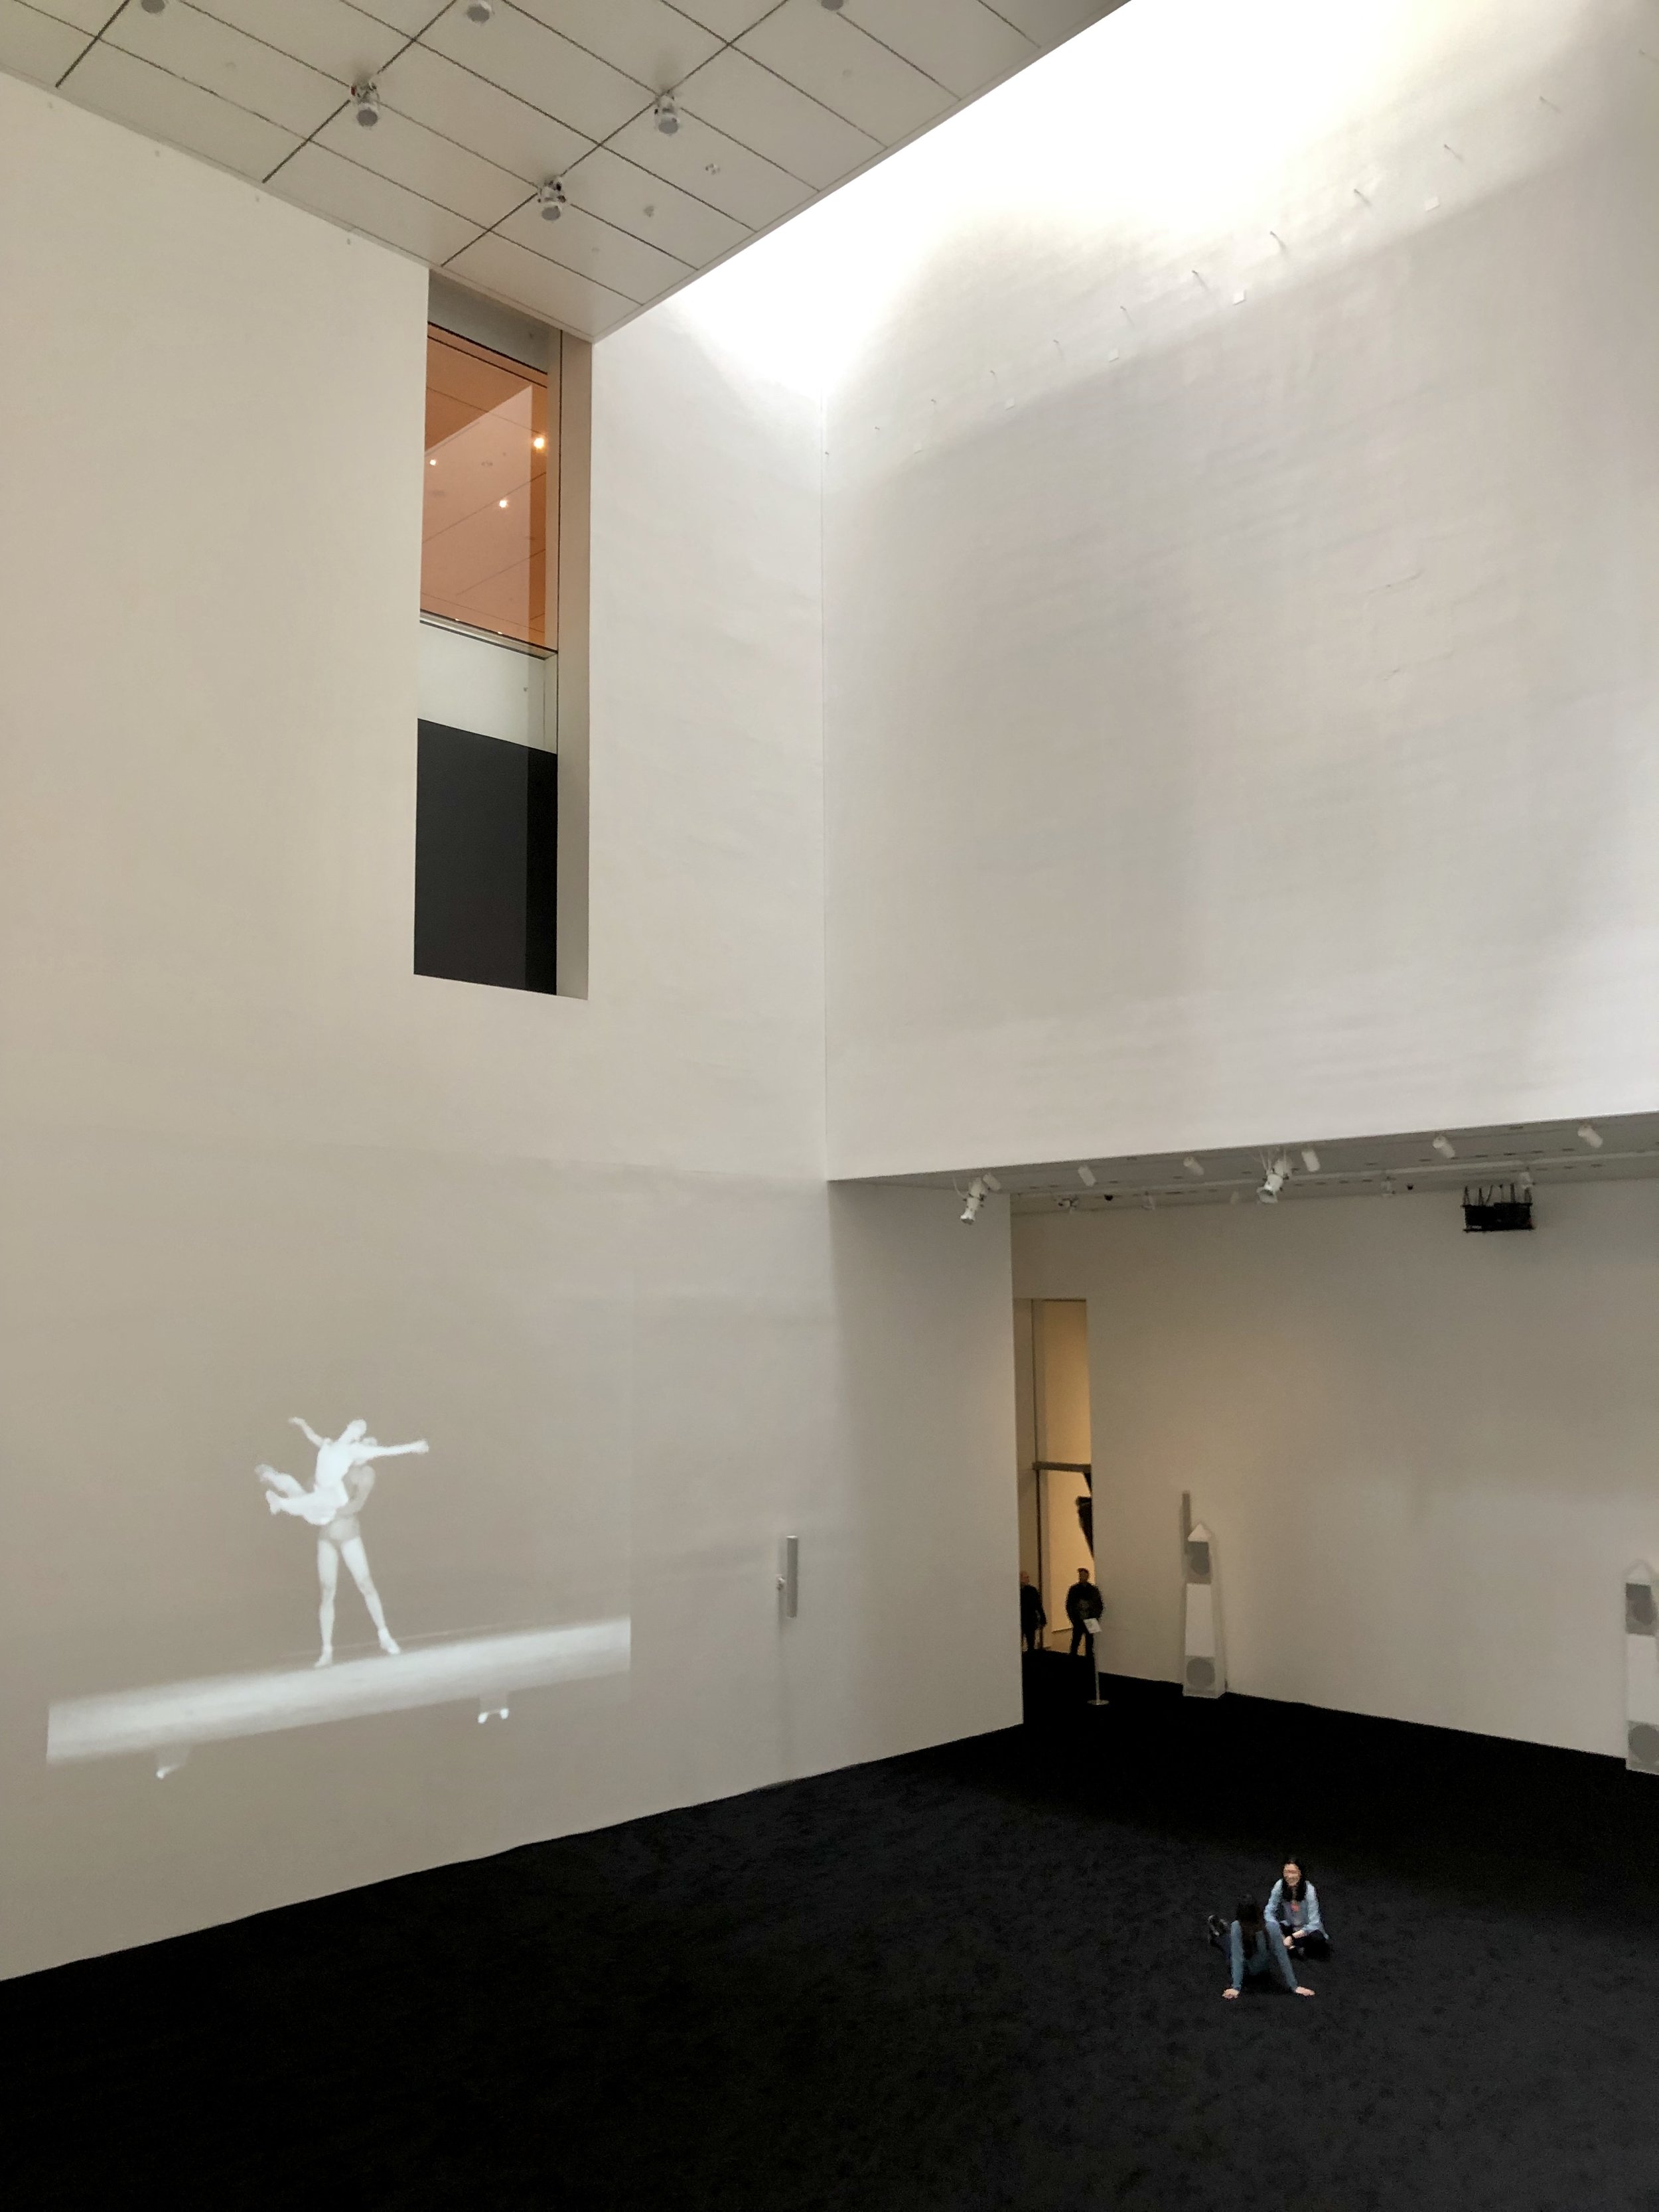 Museum of Modern Art (MOMA), Film Footage of Balanchine Ballet Rehearsal, Photograph by Amie Potsic